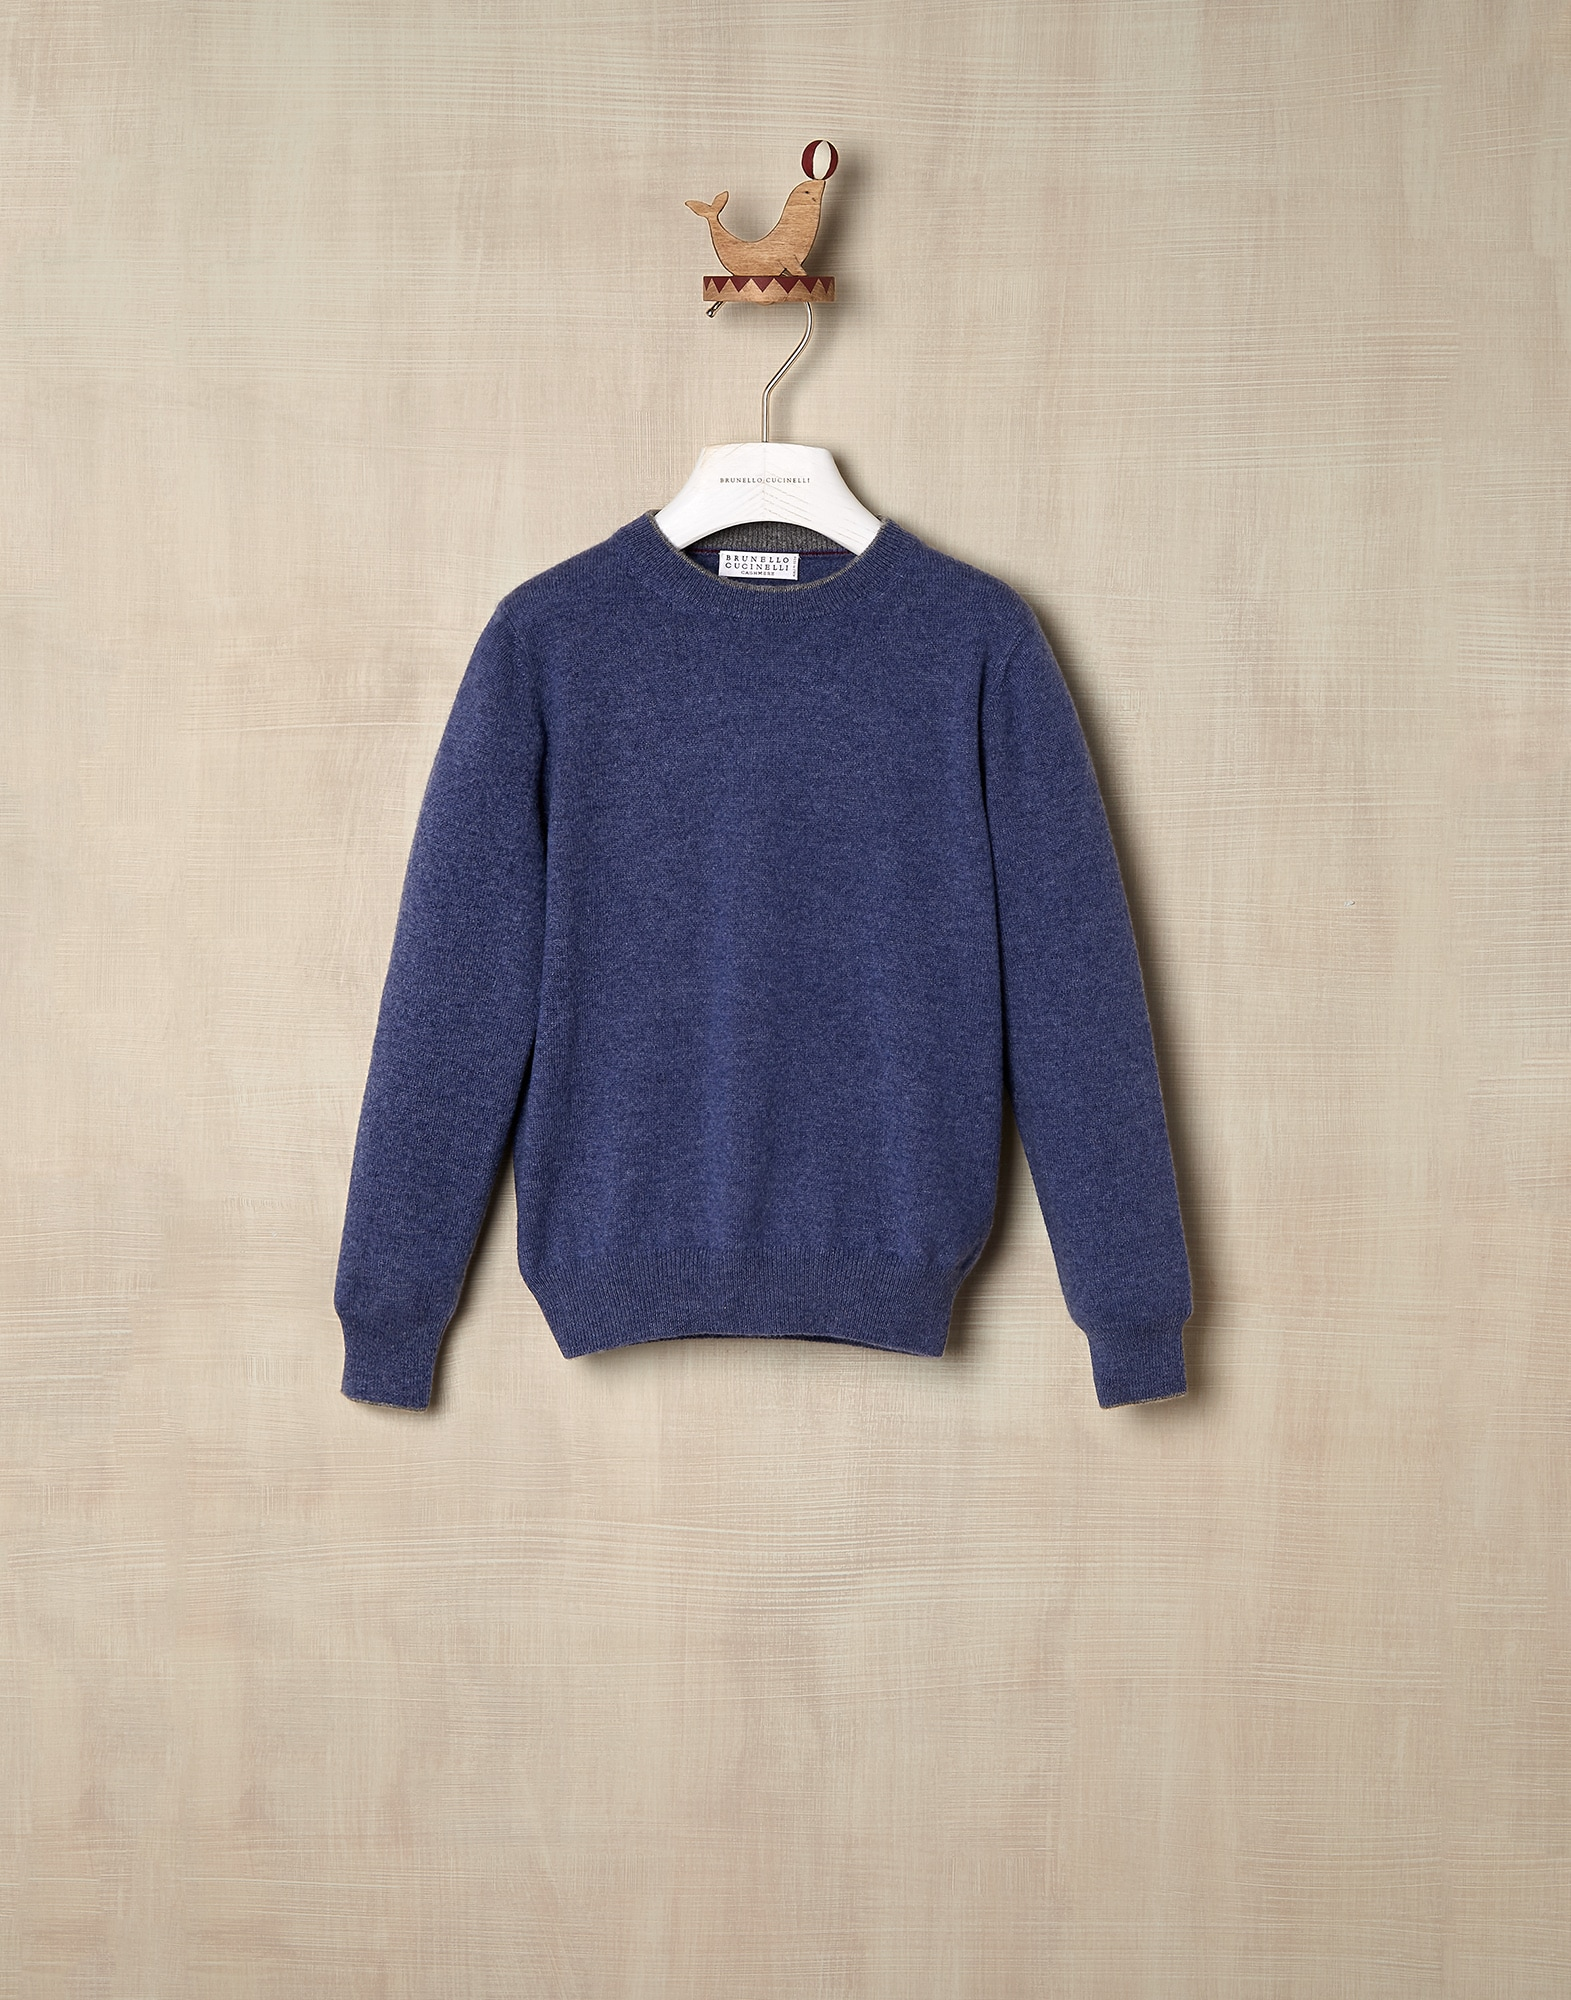 Crewneck Sweater Denim Boy 0 - Brunello Cucinelli